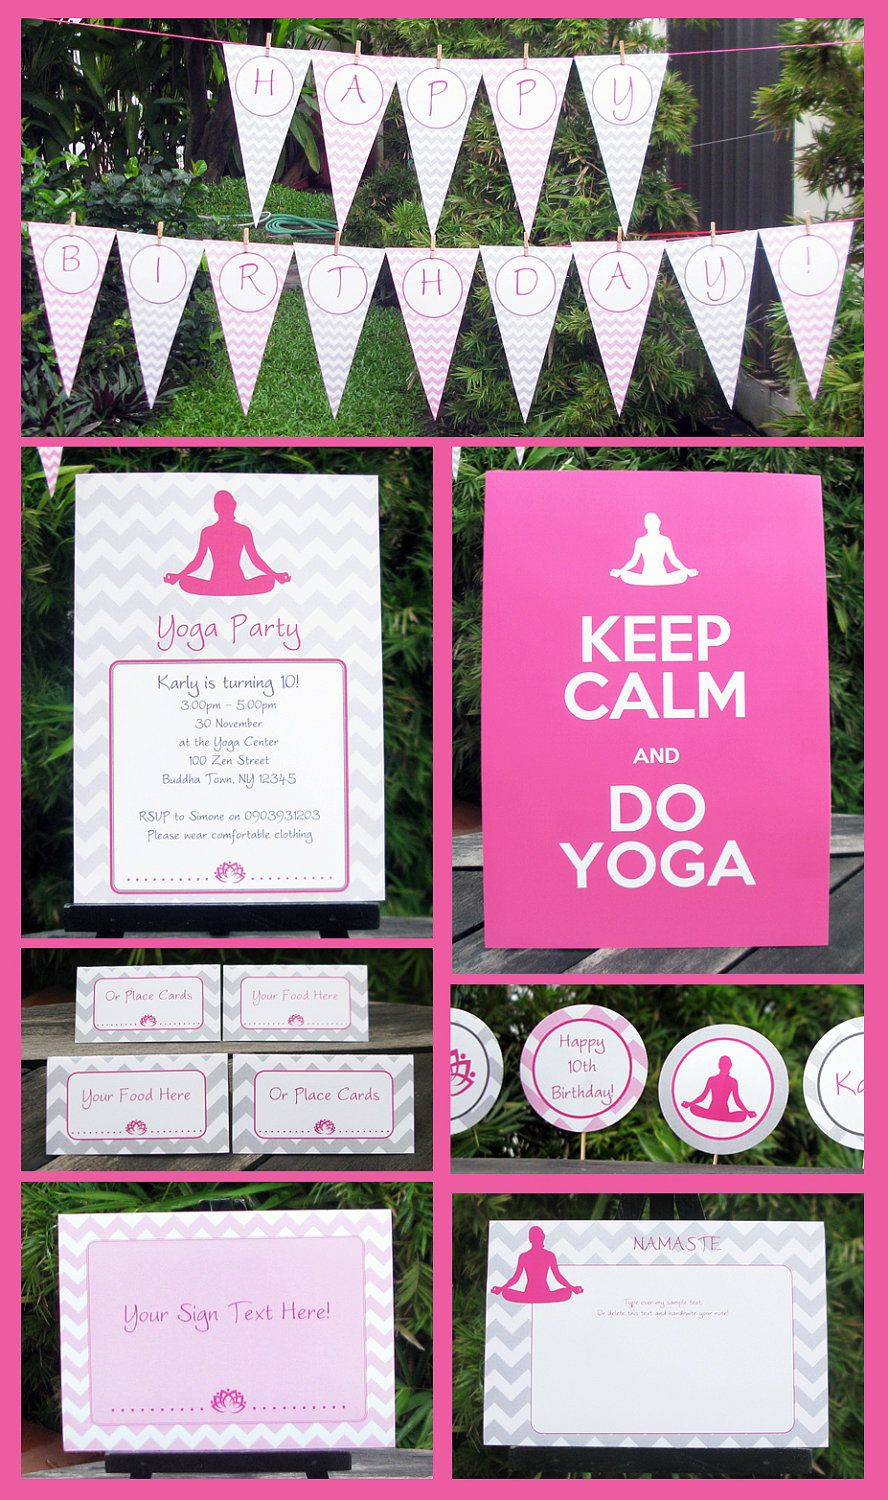 Yoga Party Invitations Decorations Full Printable Package Instant Download With Editable Text You Personalize At Home With Images Yoga Party Party Invitations Printable Invitations